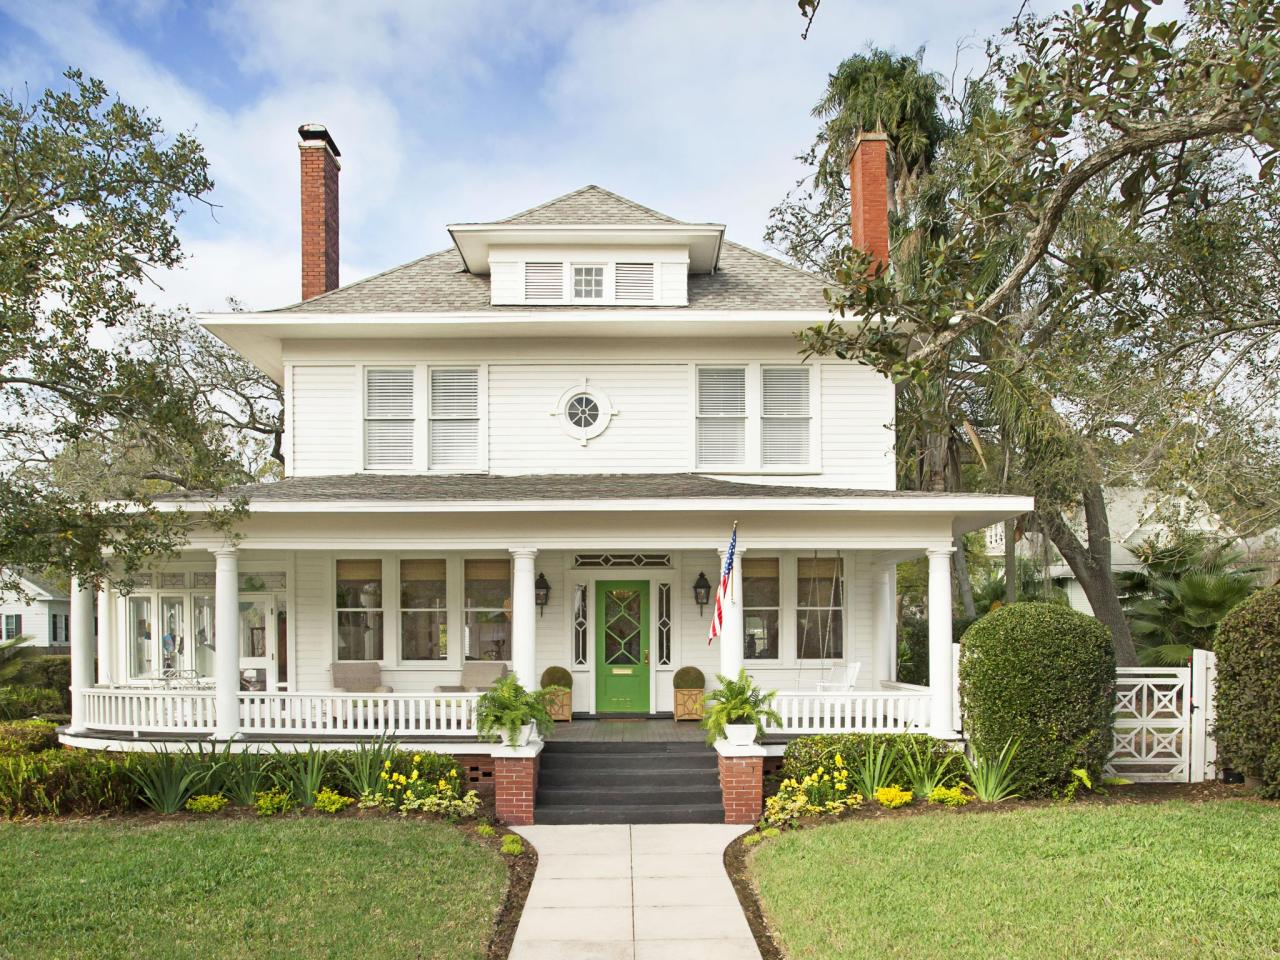 1908 House with A Wraparound Porch